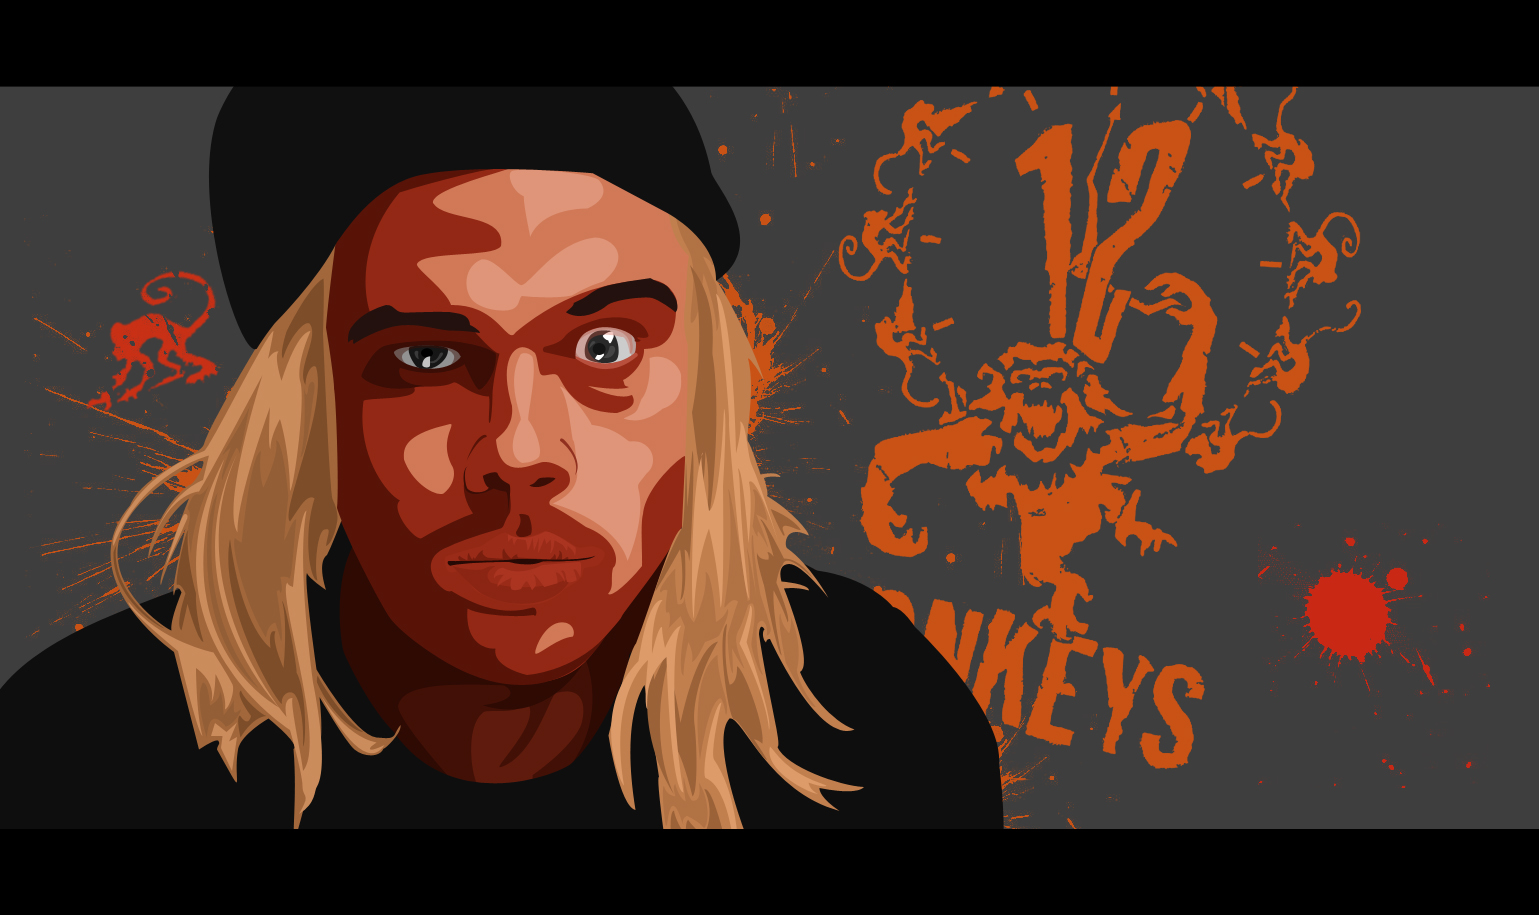 12 monkeys Pitt film, 12 Monkeys.